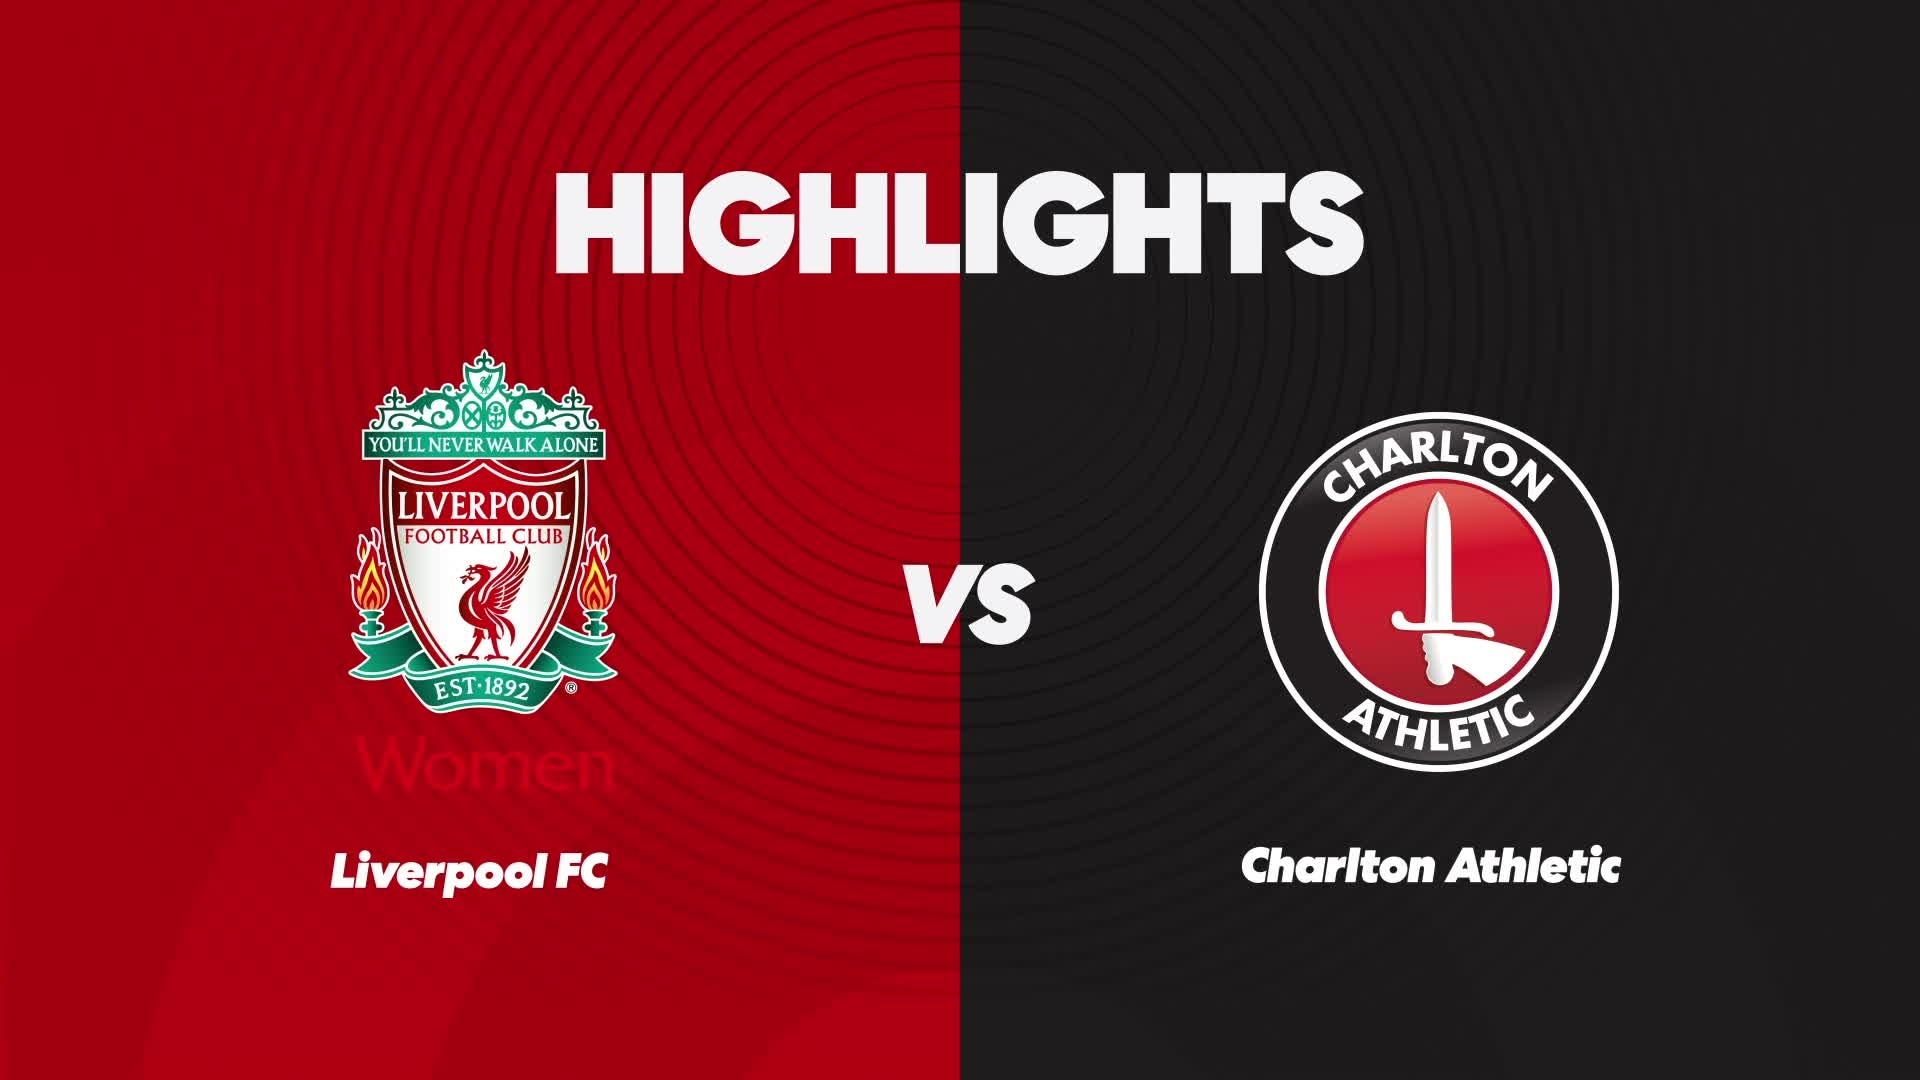 CHARLTON WOMEN | Liverpool 4 Charlton Athletic Women 0 (Sept 2020)